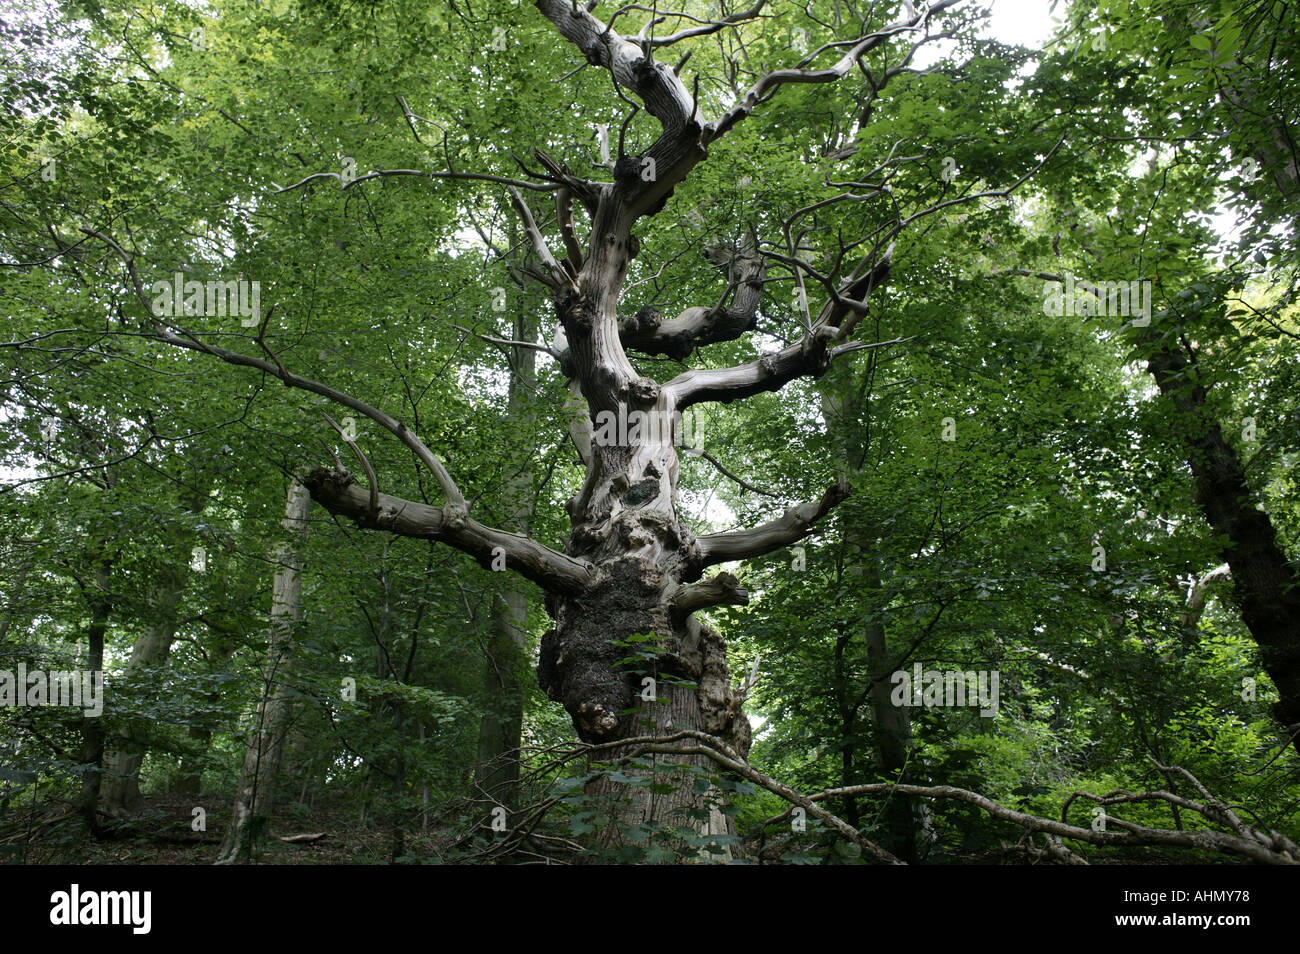 an old dead tree in the middle of Hanbury Woods Worcestershire England UK - Stock Image